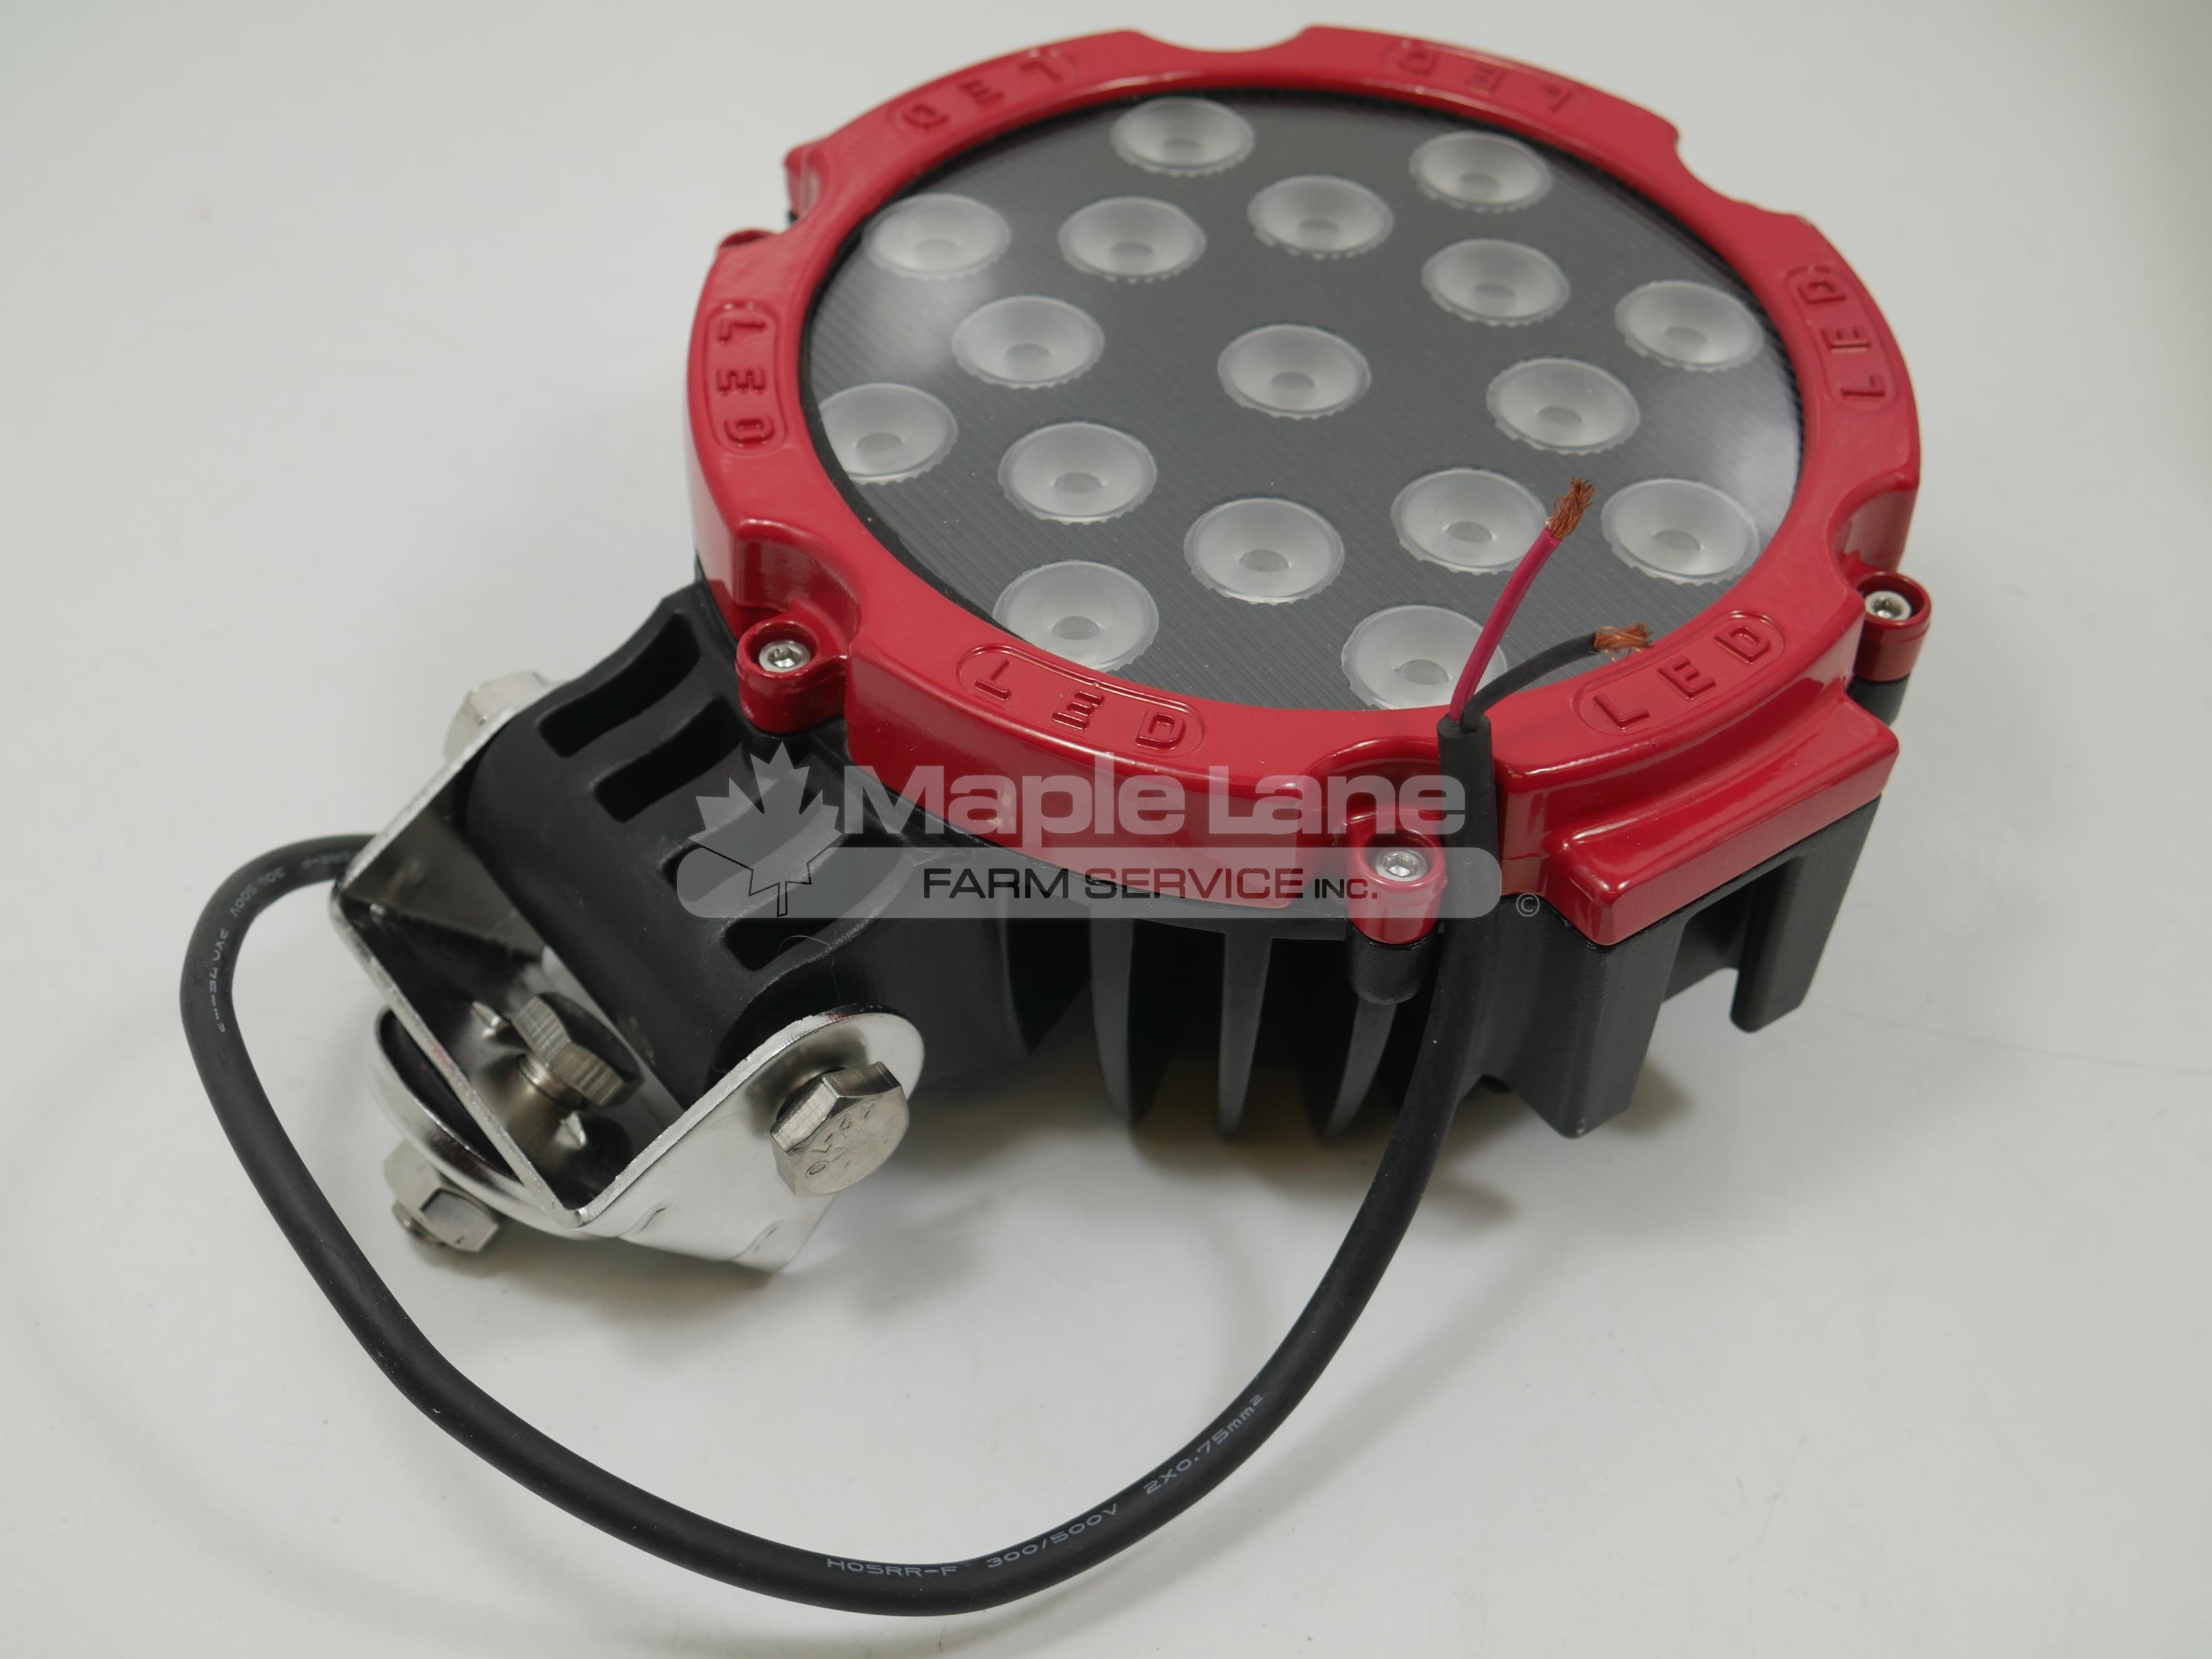 sm-2012 51w led light